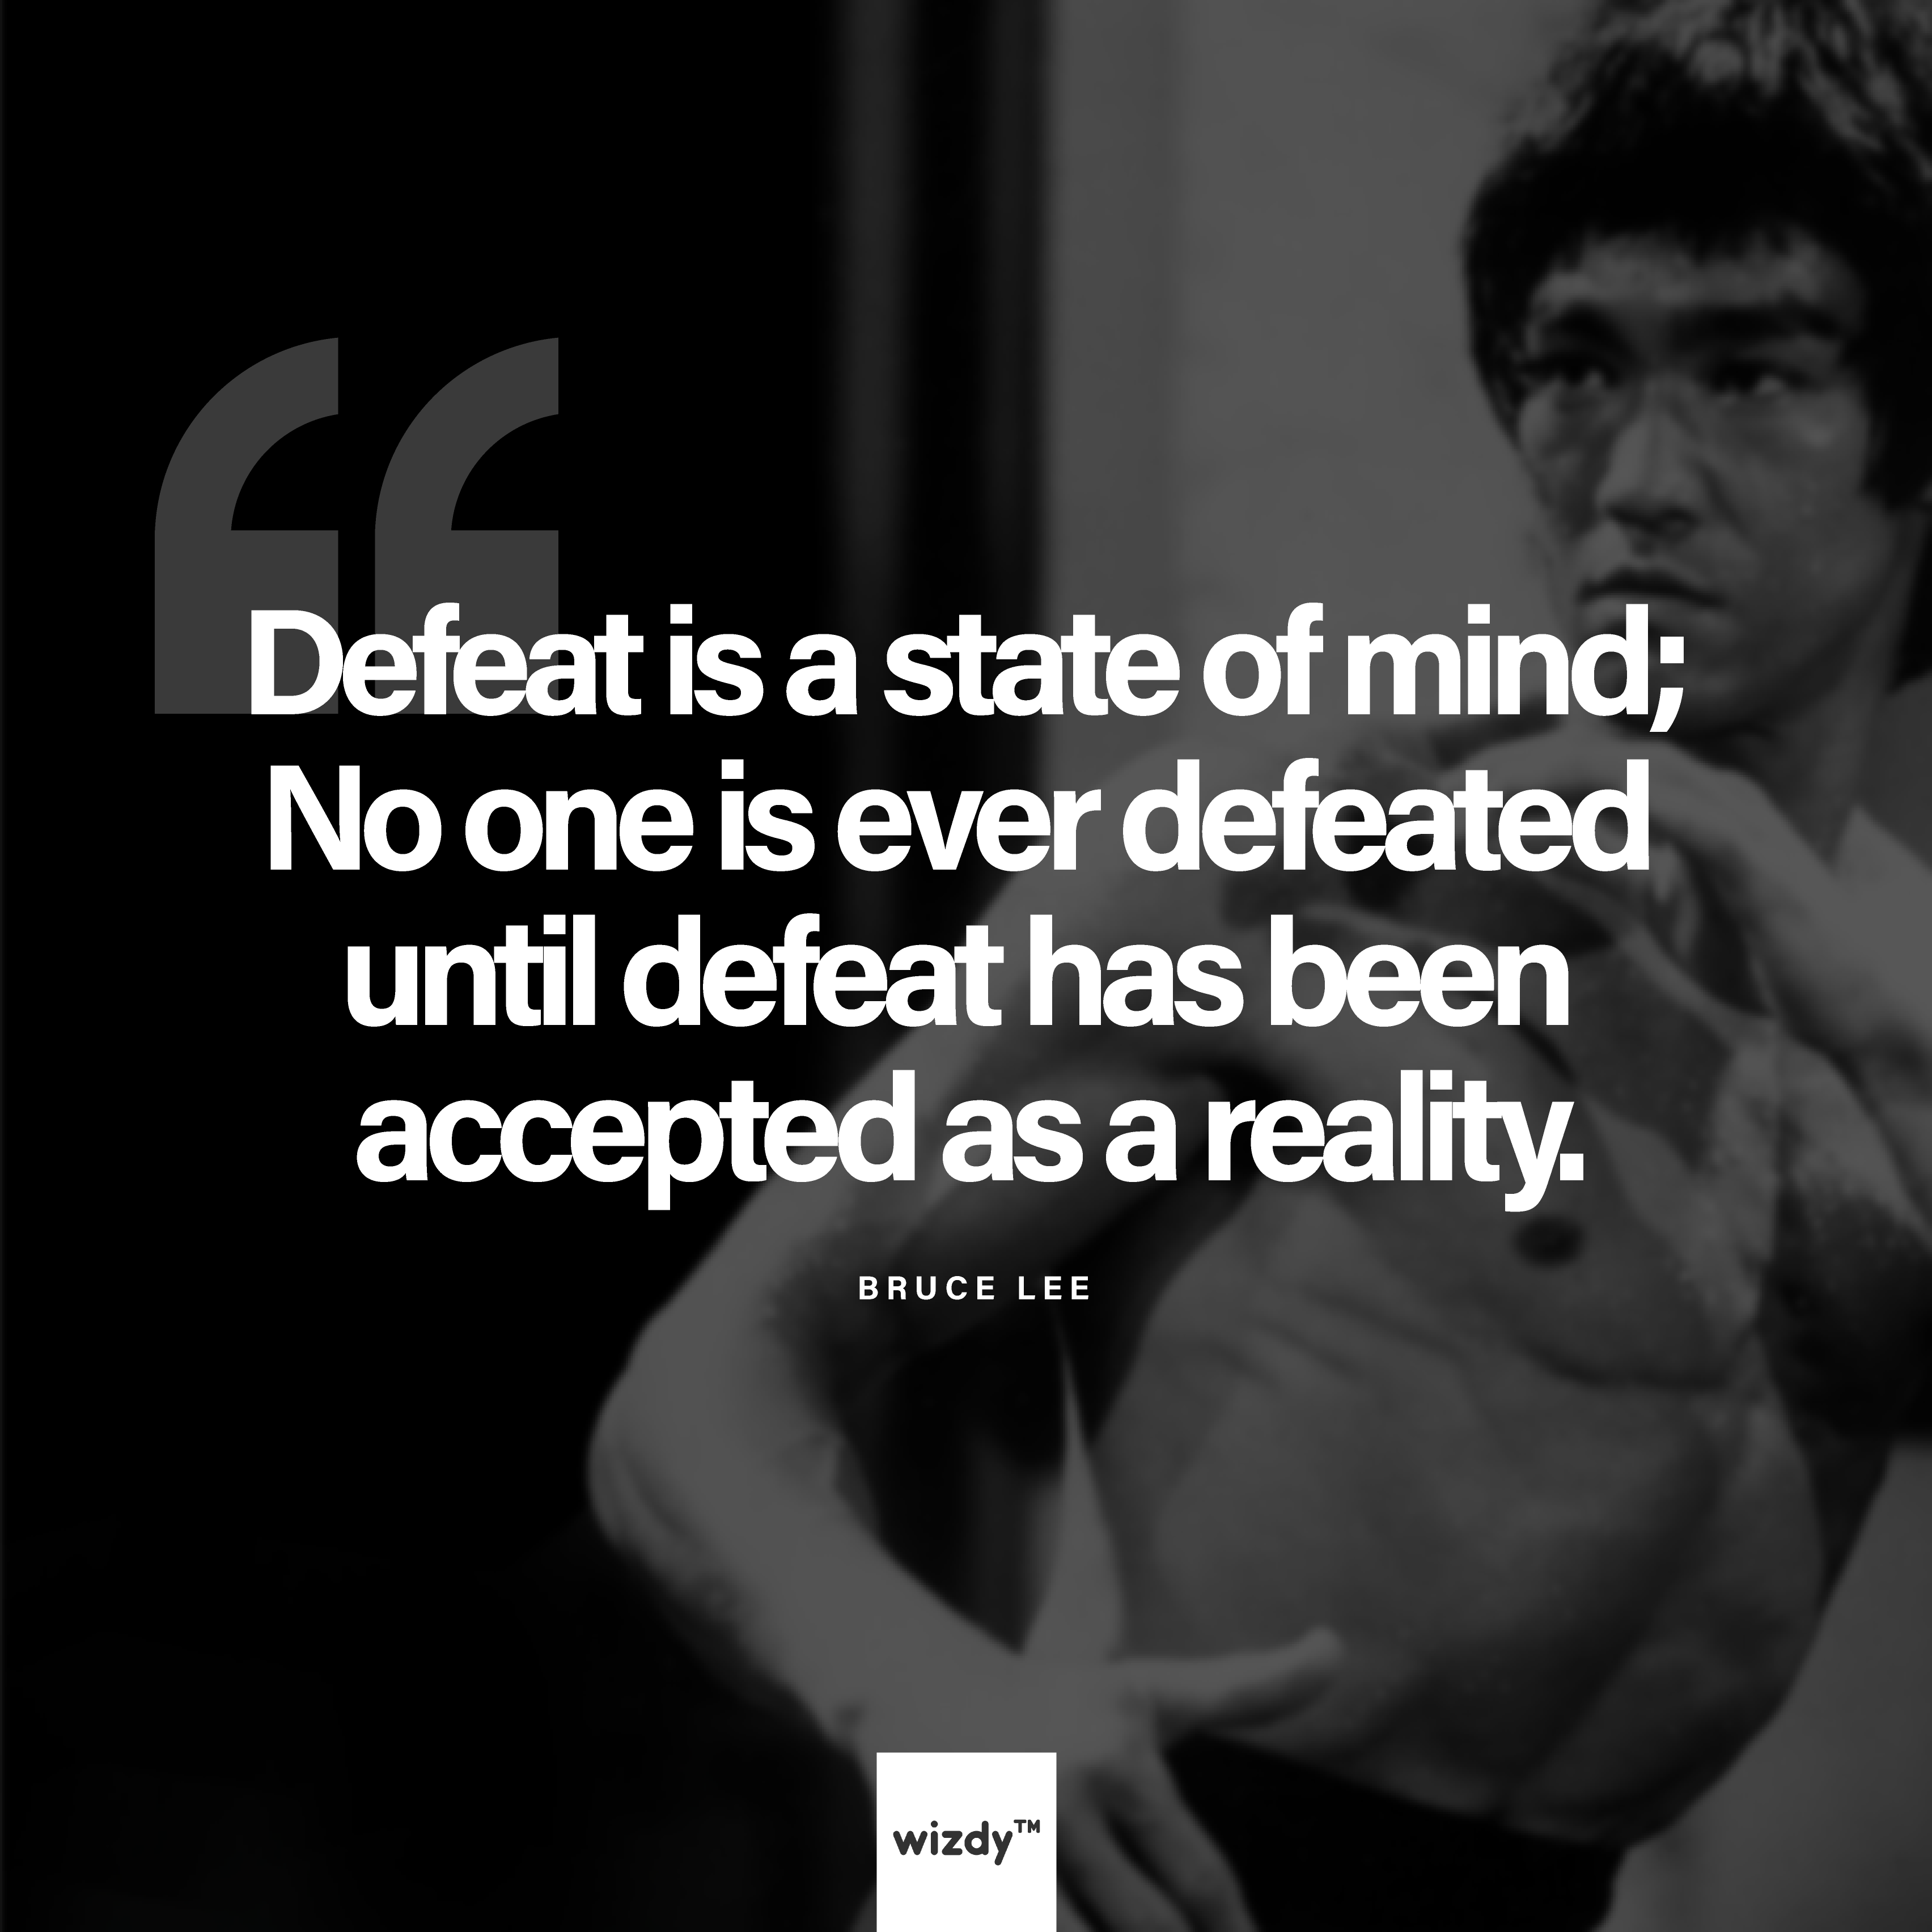 A motivational quote from the venerable bruce lee inspiration for those who need it